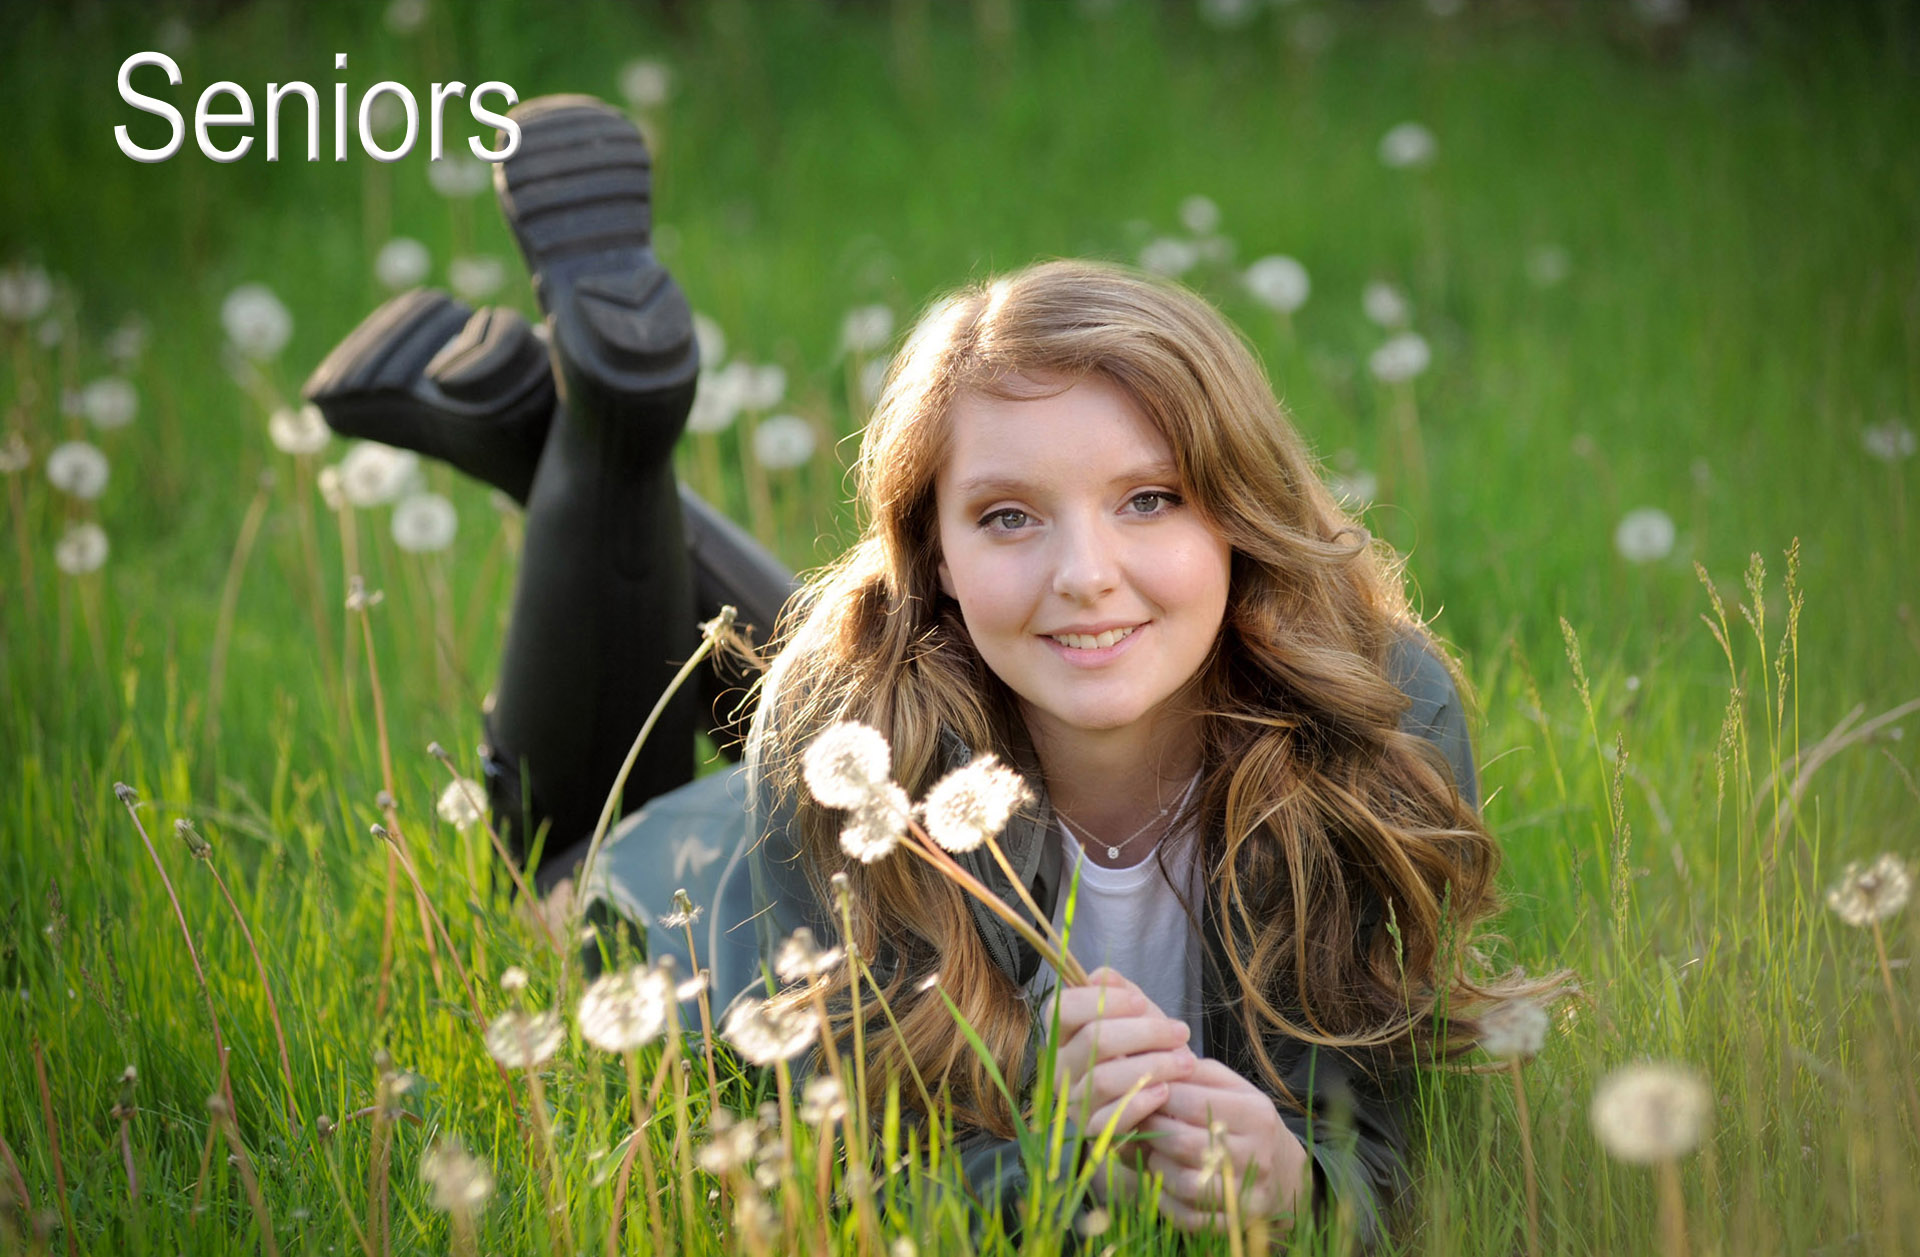 Fun senior photos taken in the Troy, Michigan area reflect the senior's personality and interests keeping the senior photo shoot fun and relaxed.